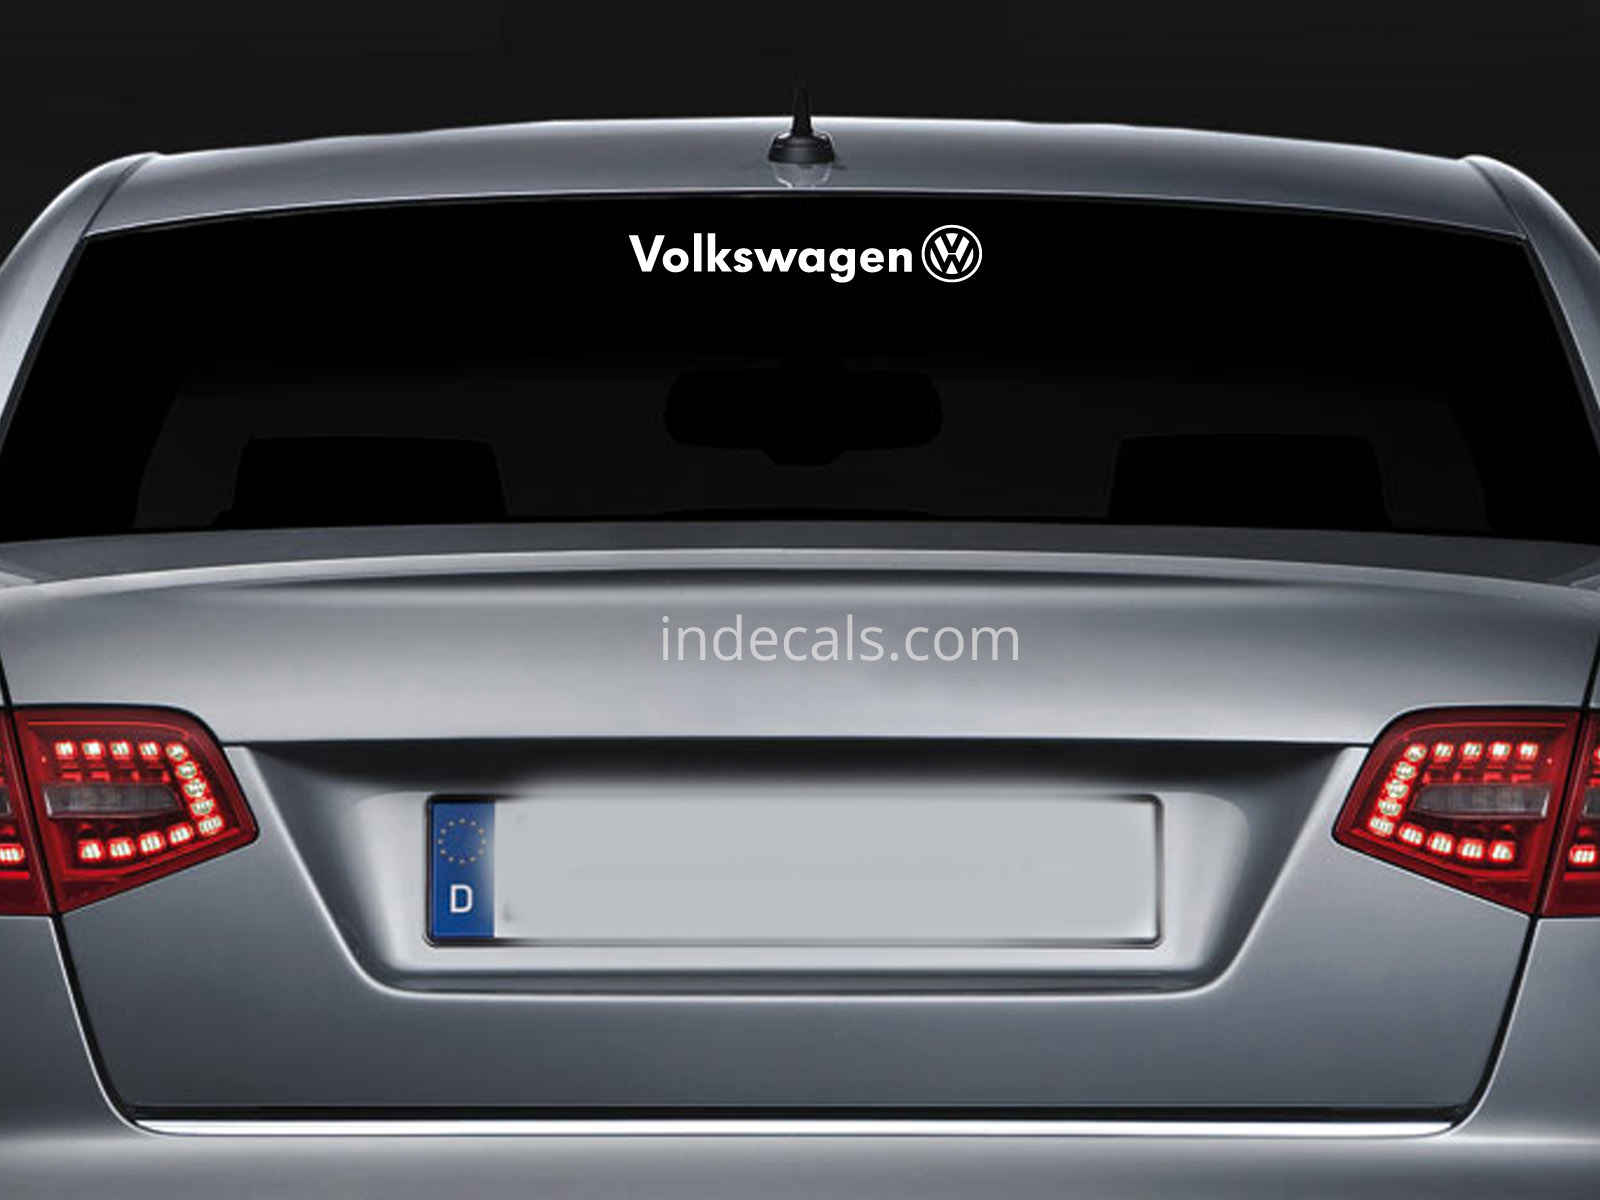 1 x Volkswagen Sticker for Windshield or Back Window - White